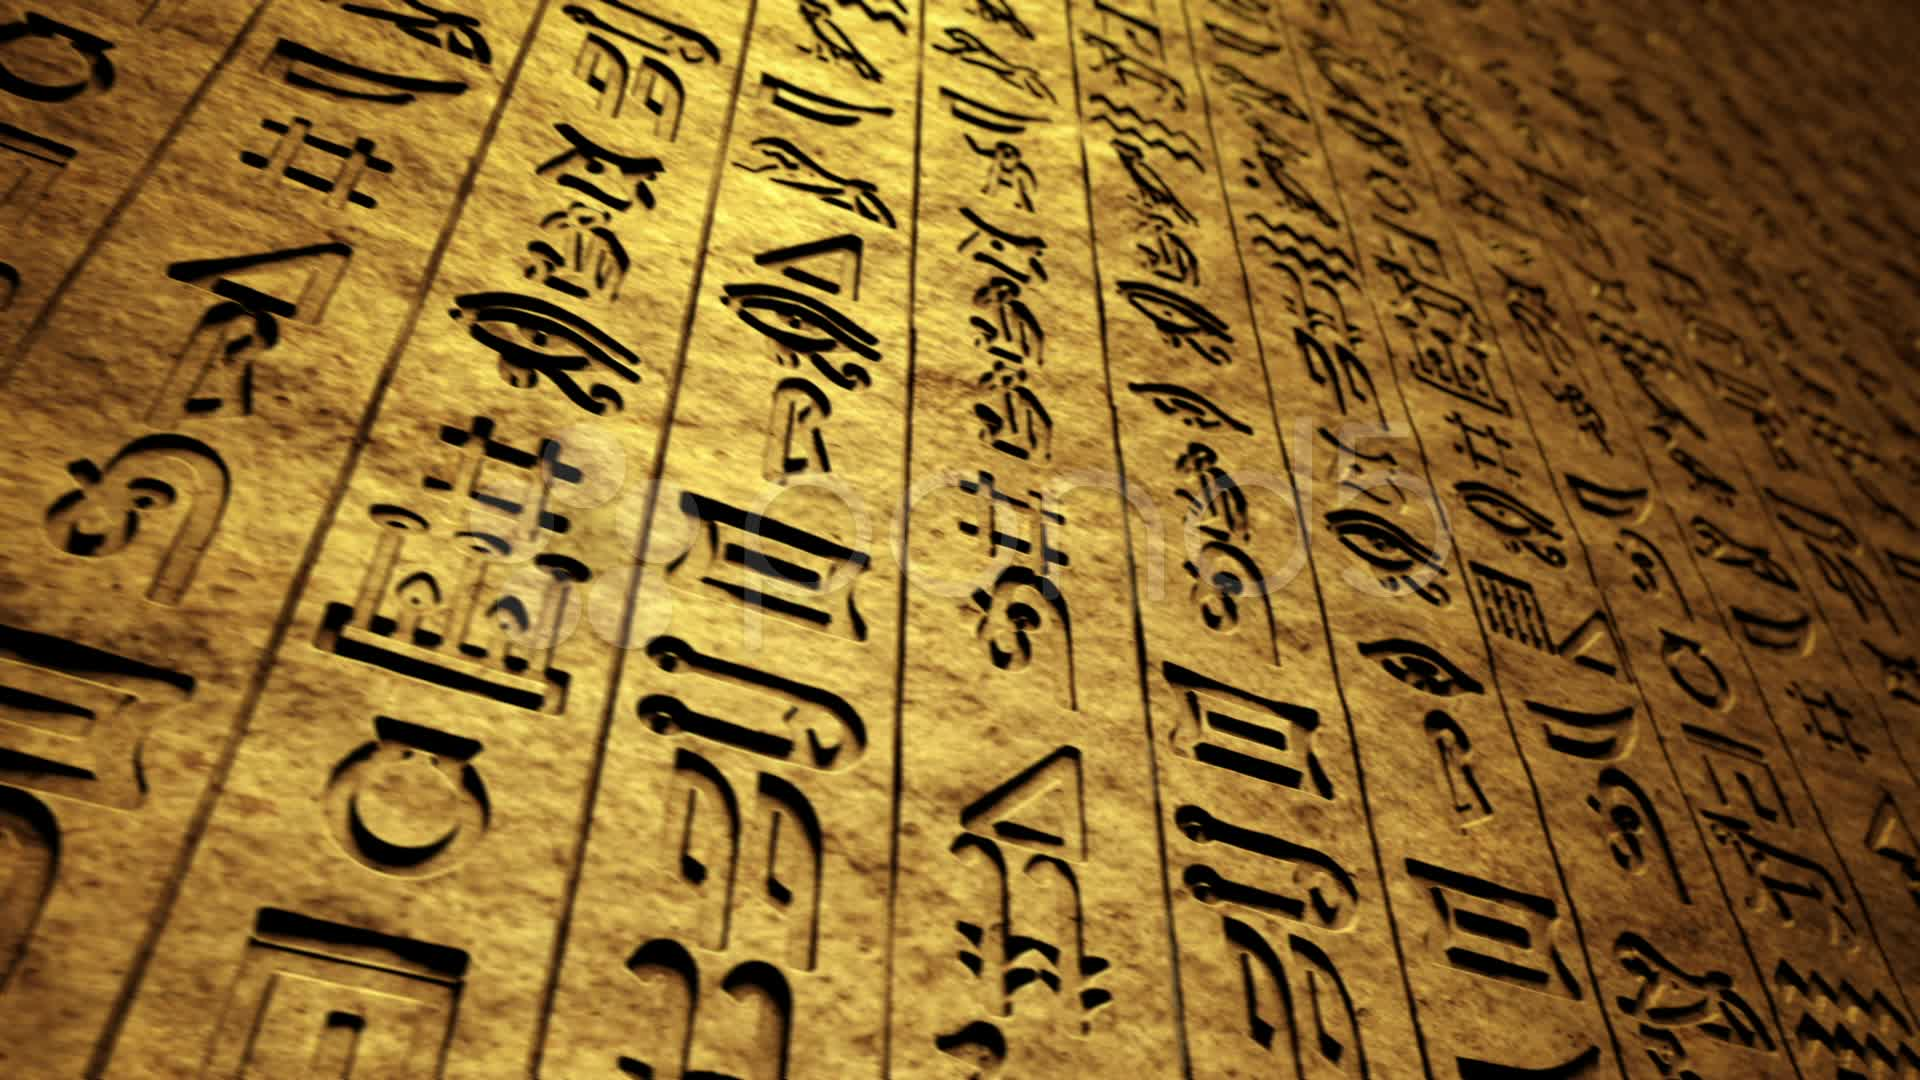 1920x1080 wallpaper.wiki-Egyptian-Hieroglyphics-HD-Image-PIC-WPD007166 ...